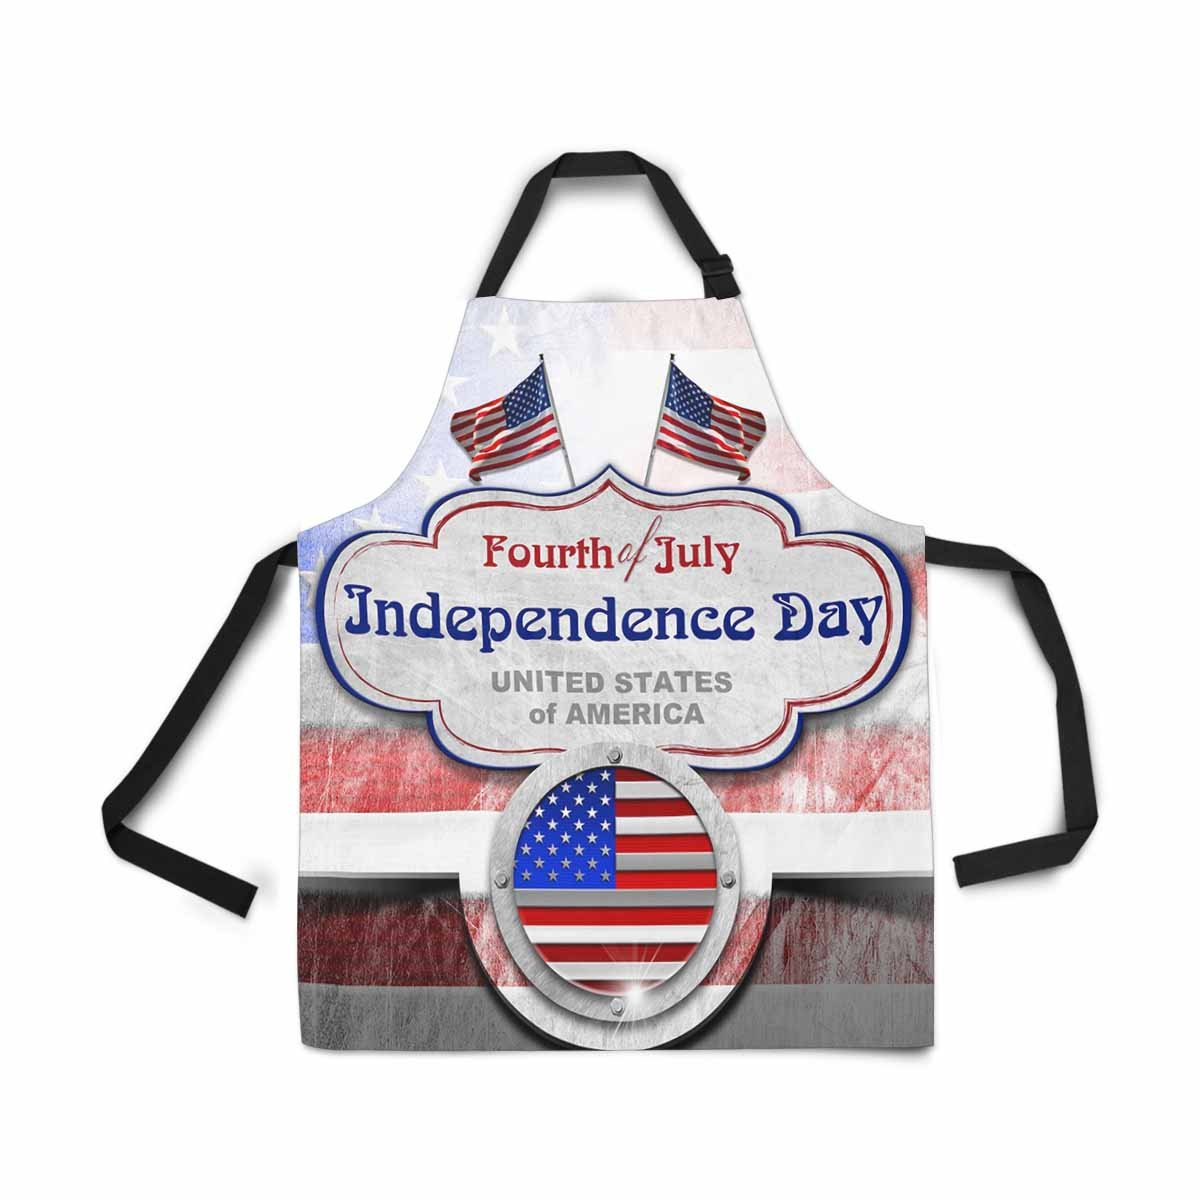 InterestPrint Vintage 4th of July Independence Day US American Flag Label Adjustable Bib Apron for Women Men Girls Chef with Pockets, Kitchen Apron for Cooking Baking Gardening Pet Grooming Cleaning